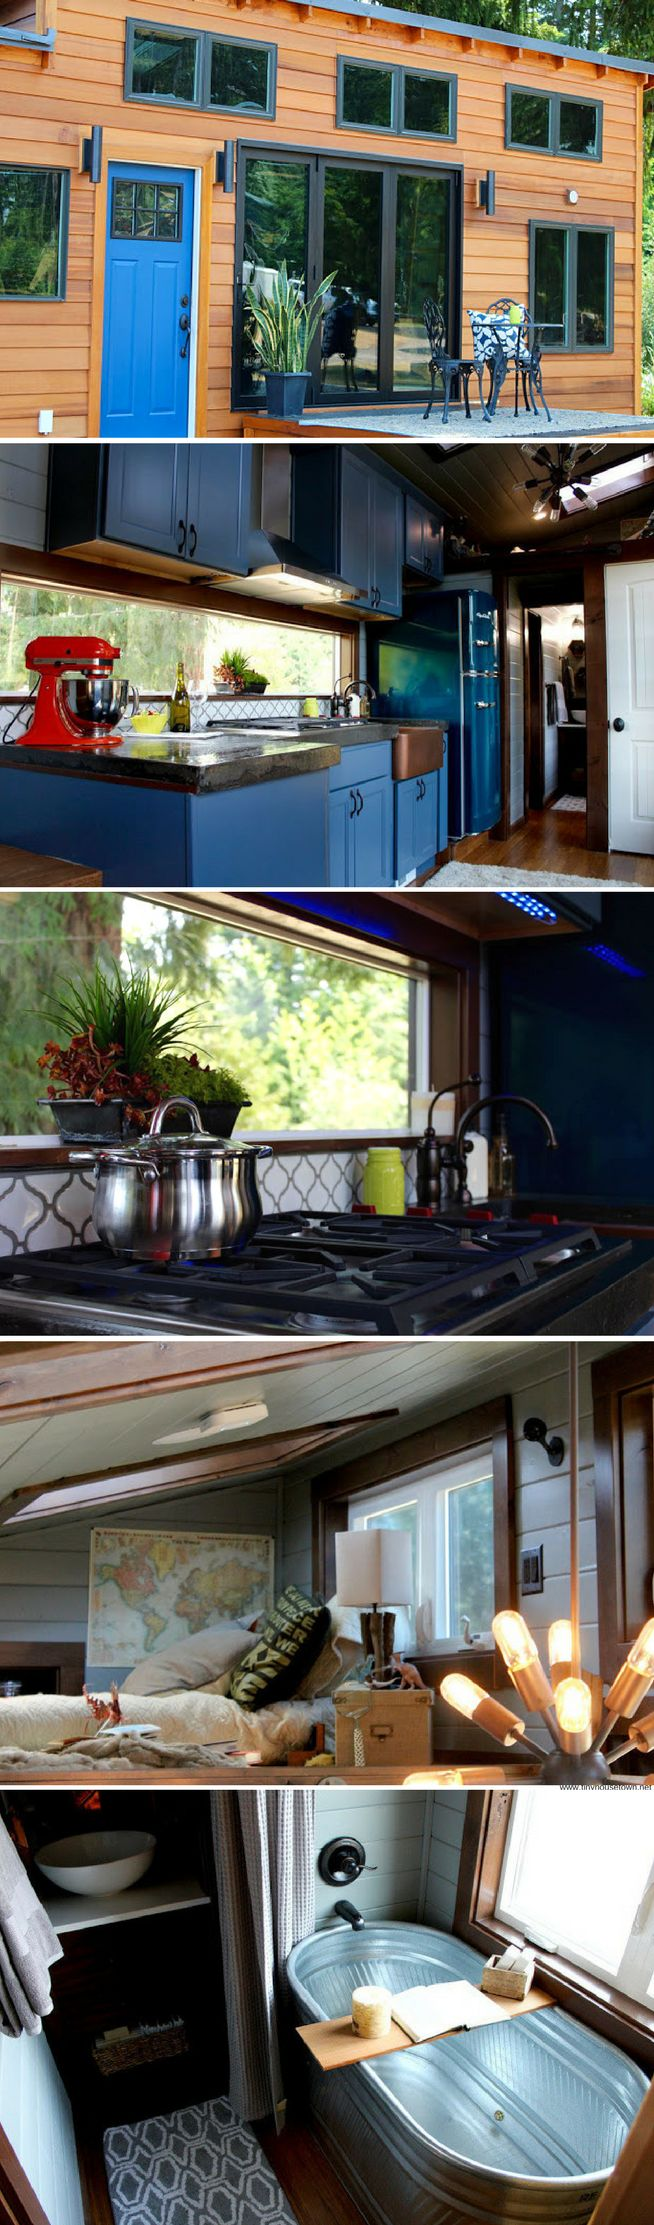 The sapphire house from tiny heirloom tiny house town - The 280 Sq Ft Luxurious Tiny House From Tiny Heirloom